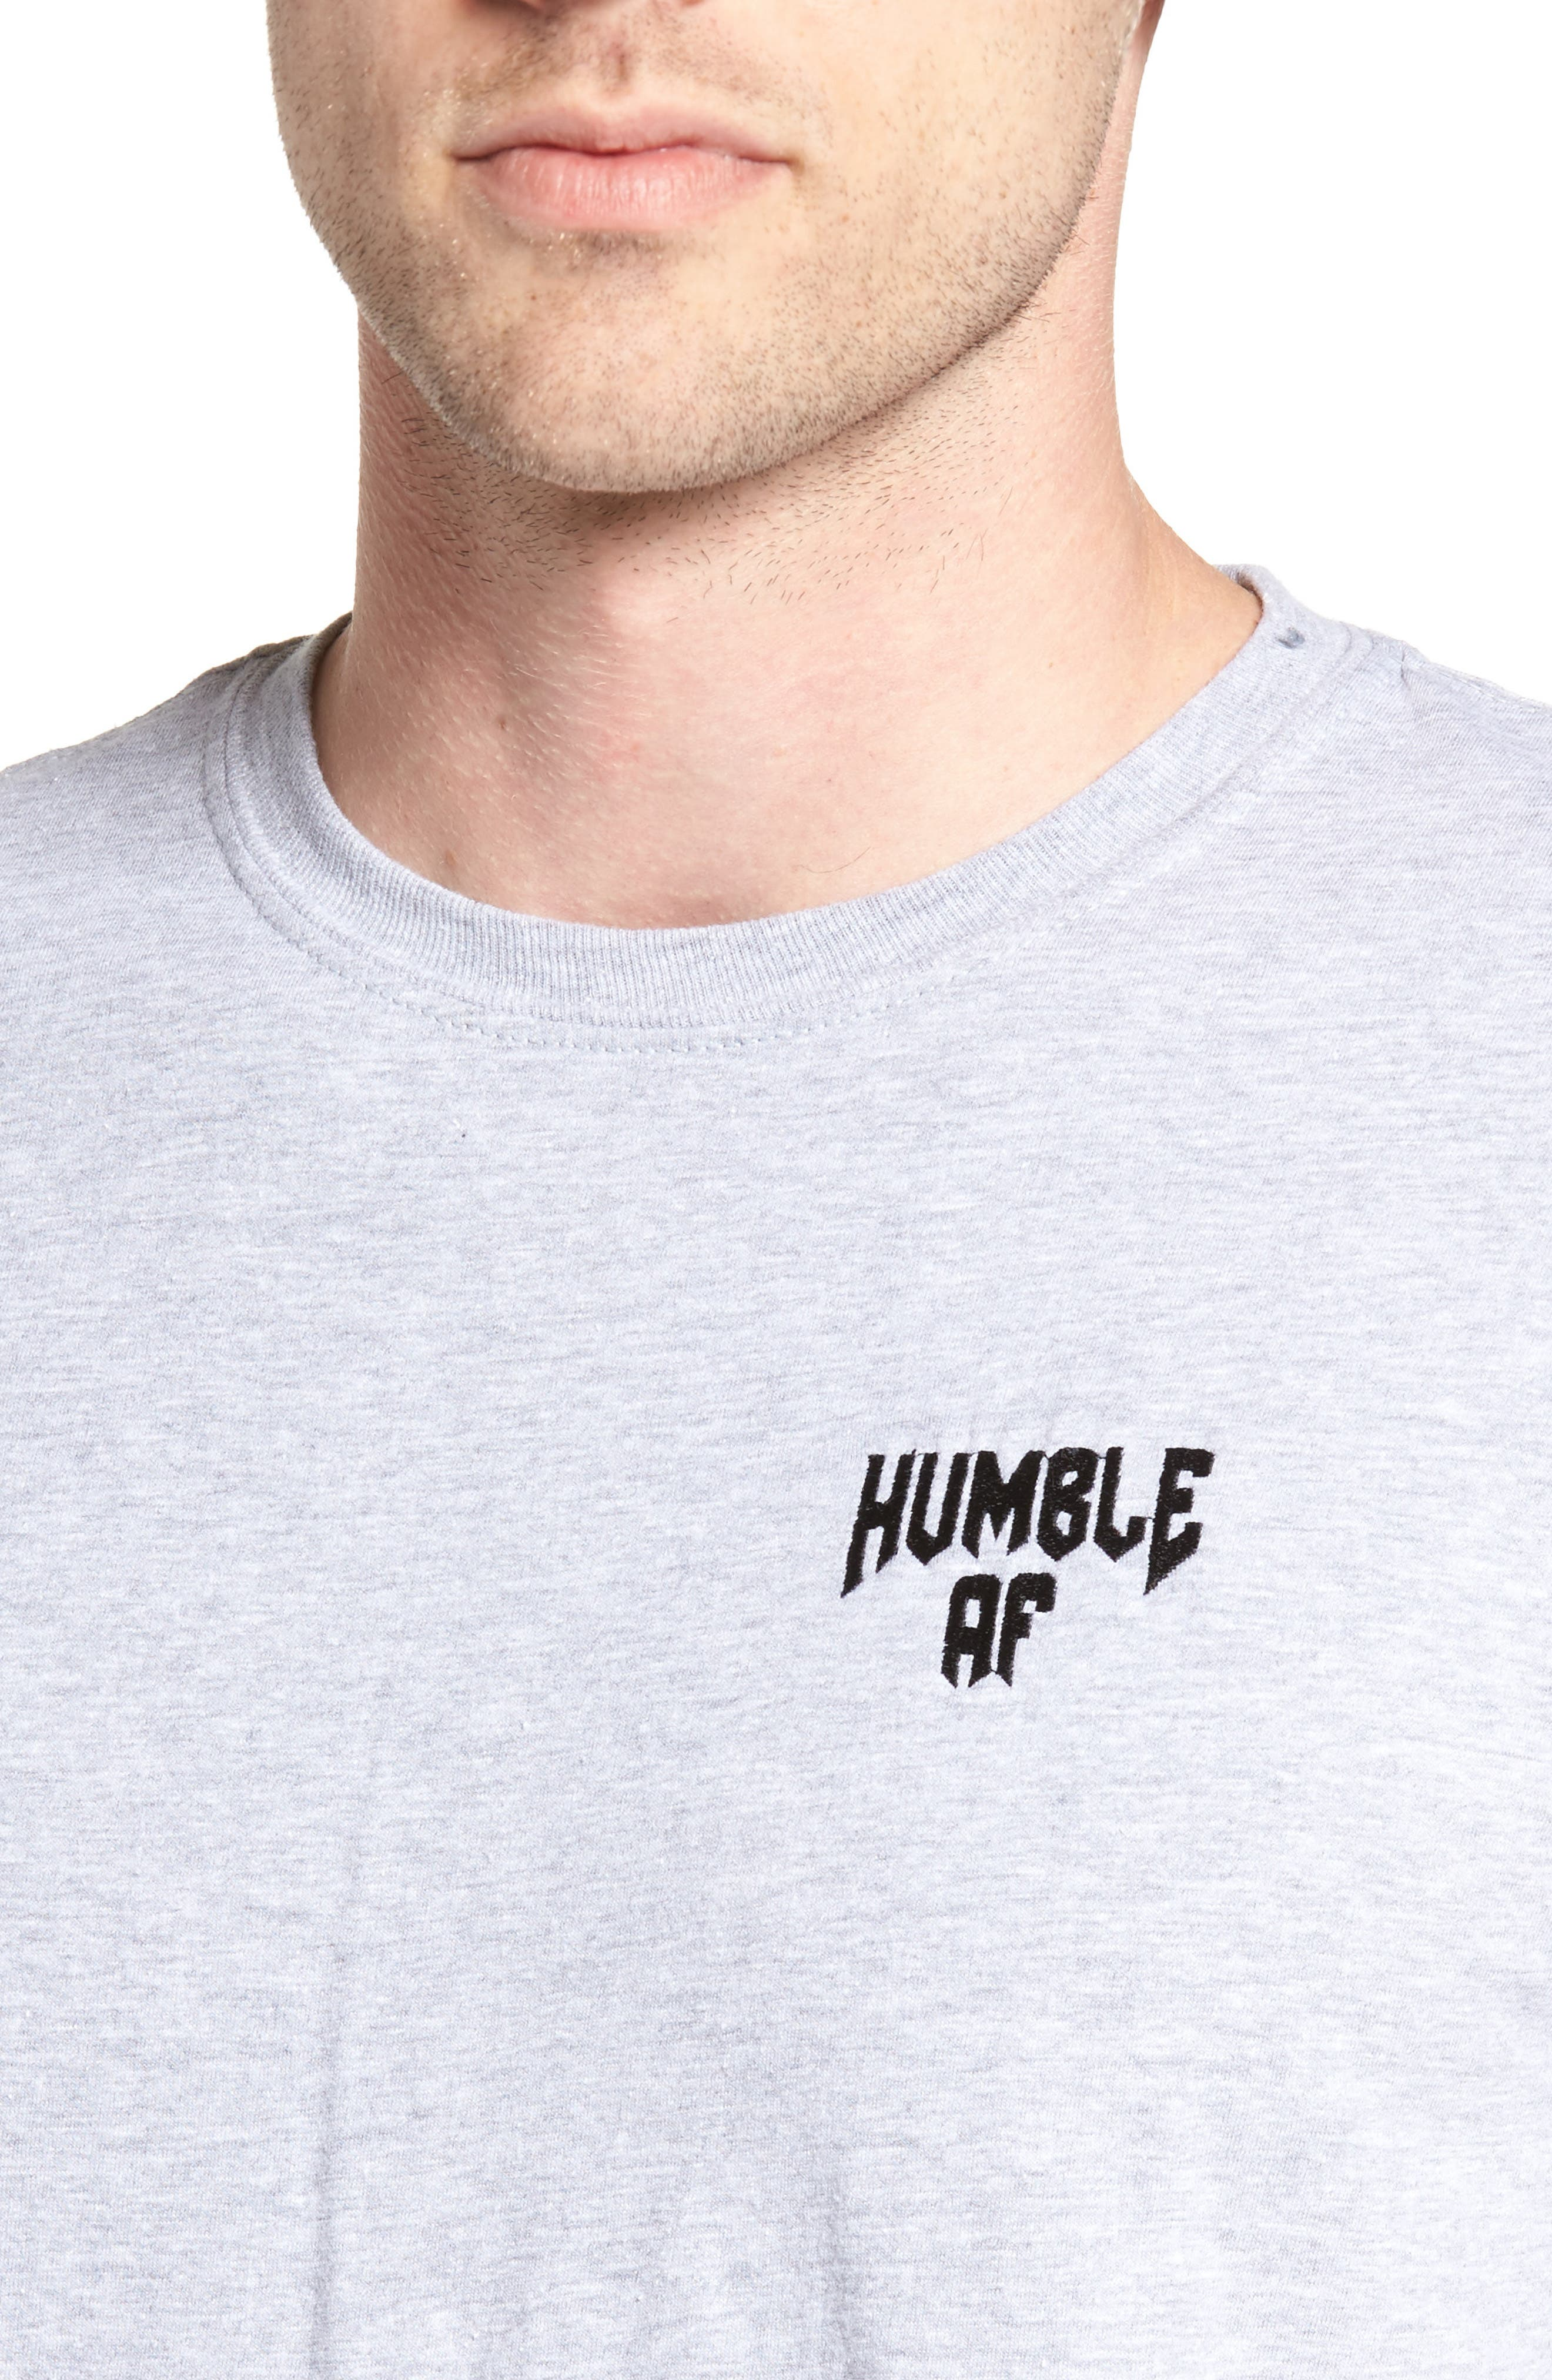 Humble AF T-Shirt,                             Alternate thumbnail 4, color,                             Grey Heather Humble